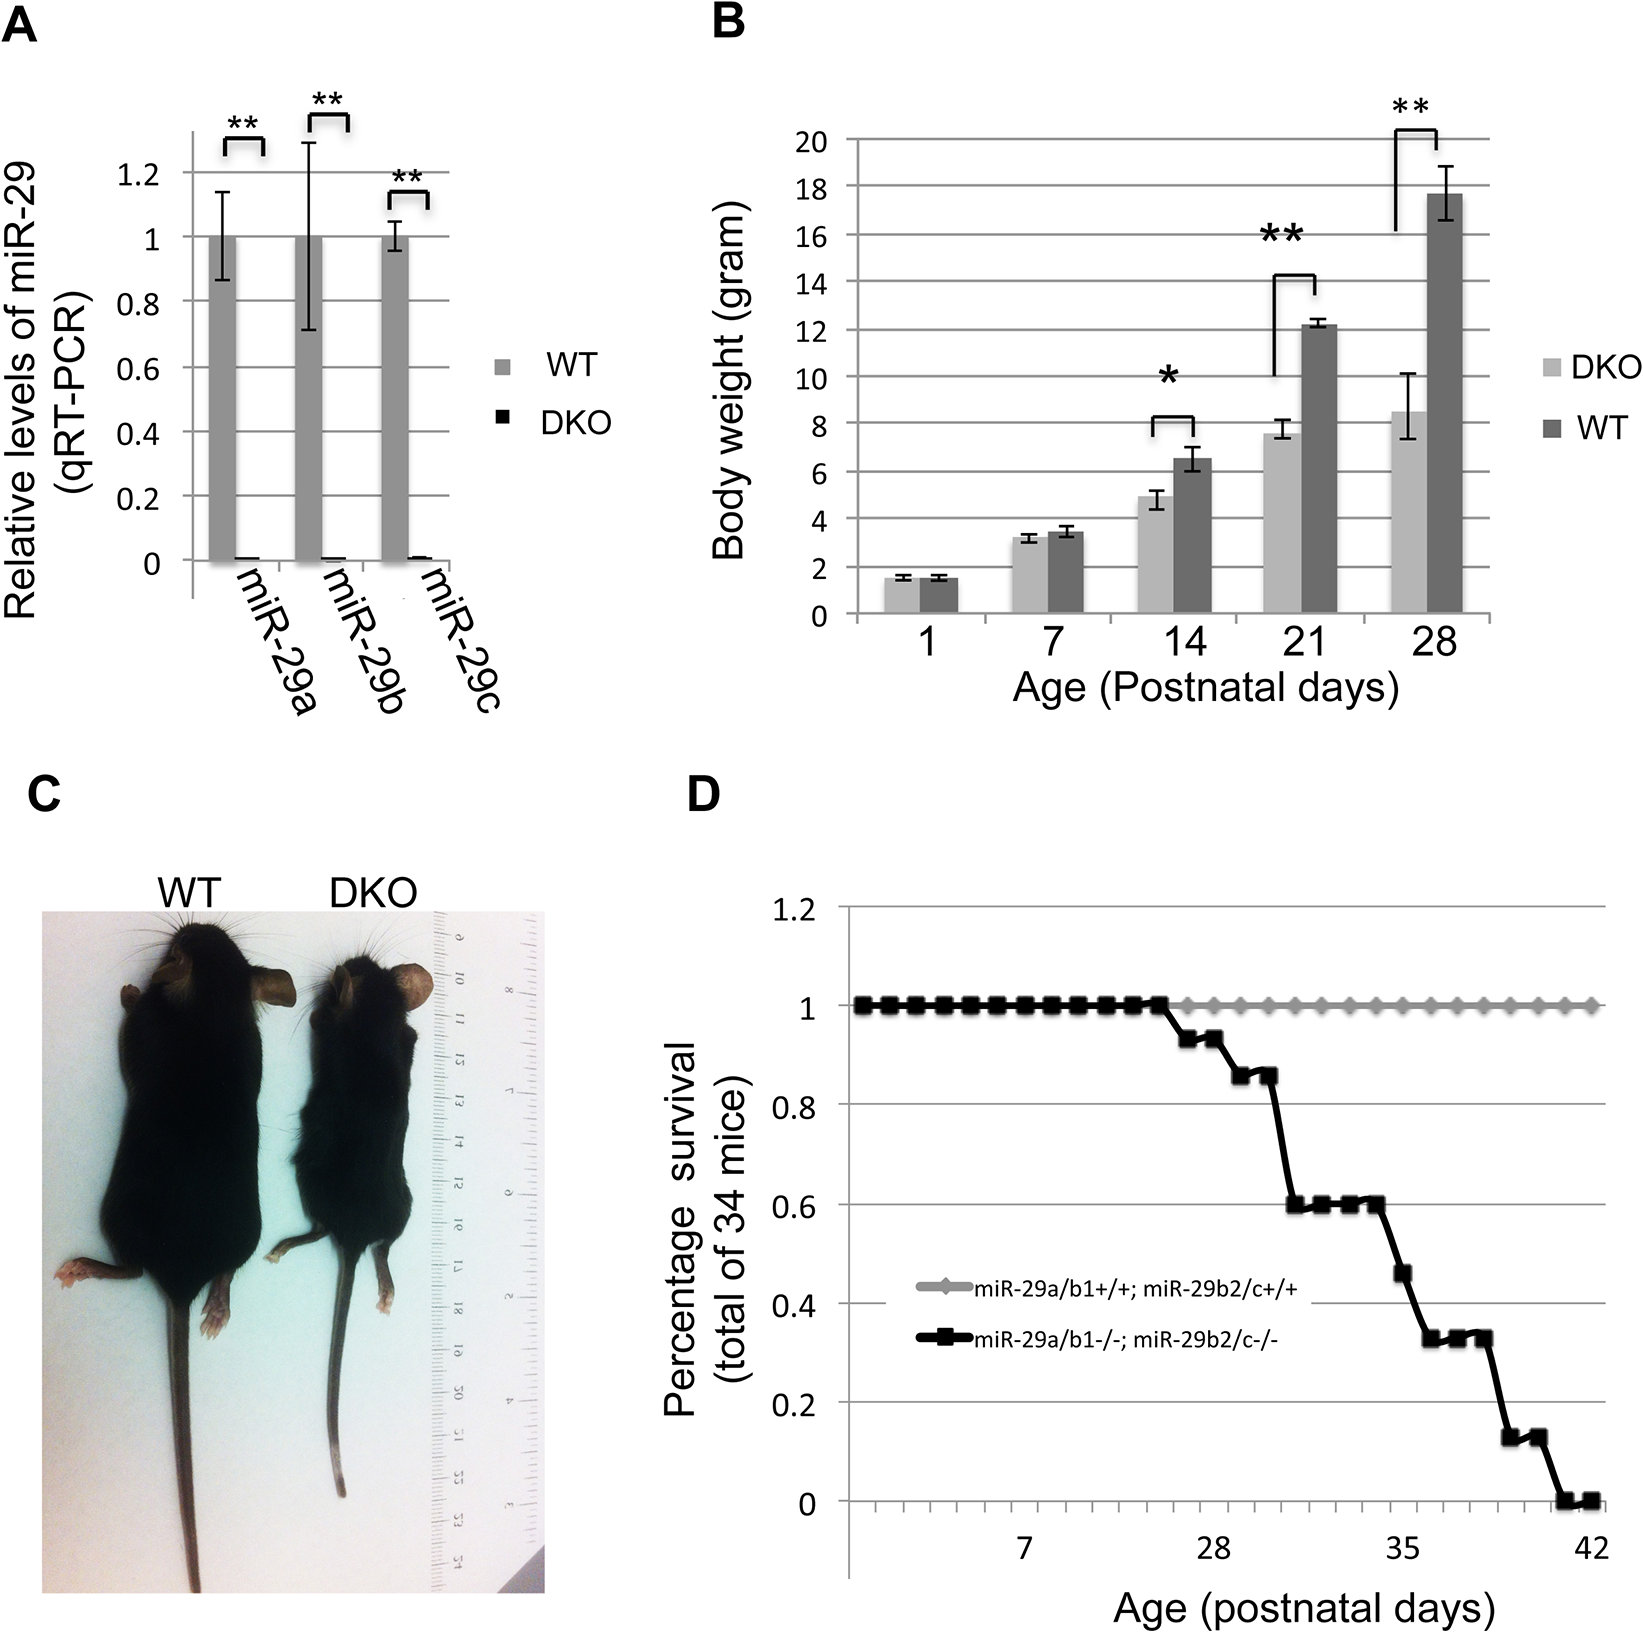 Postnatal growth retardation and lethality of miR-29 null mice.